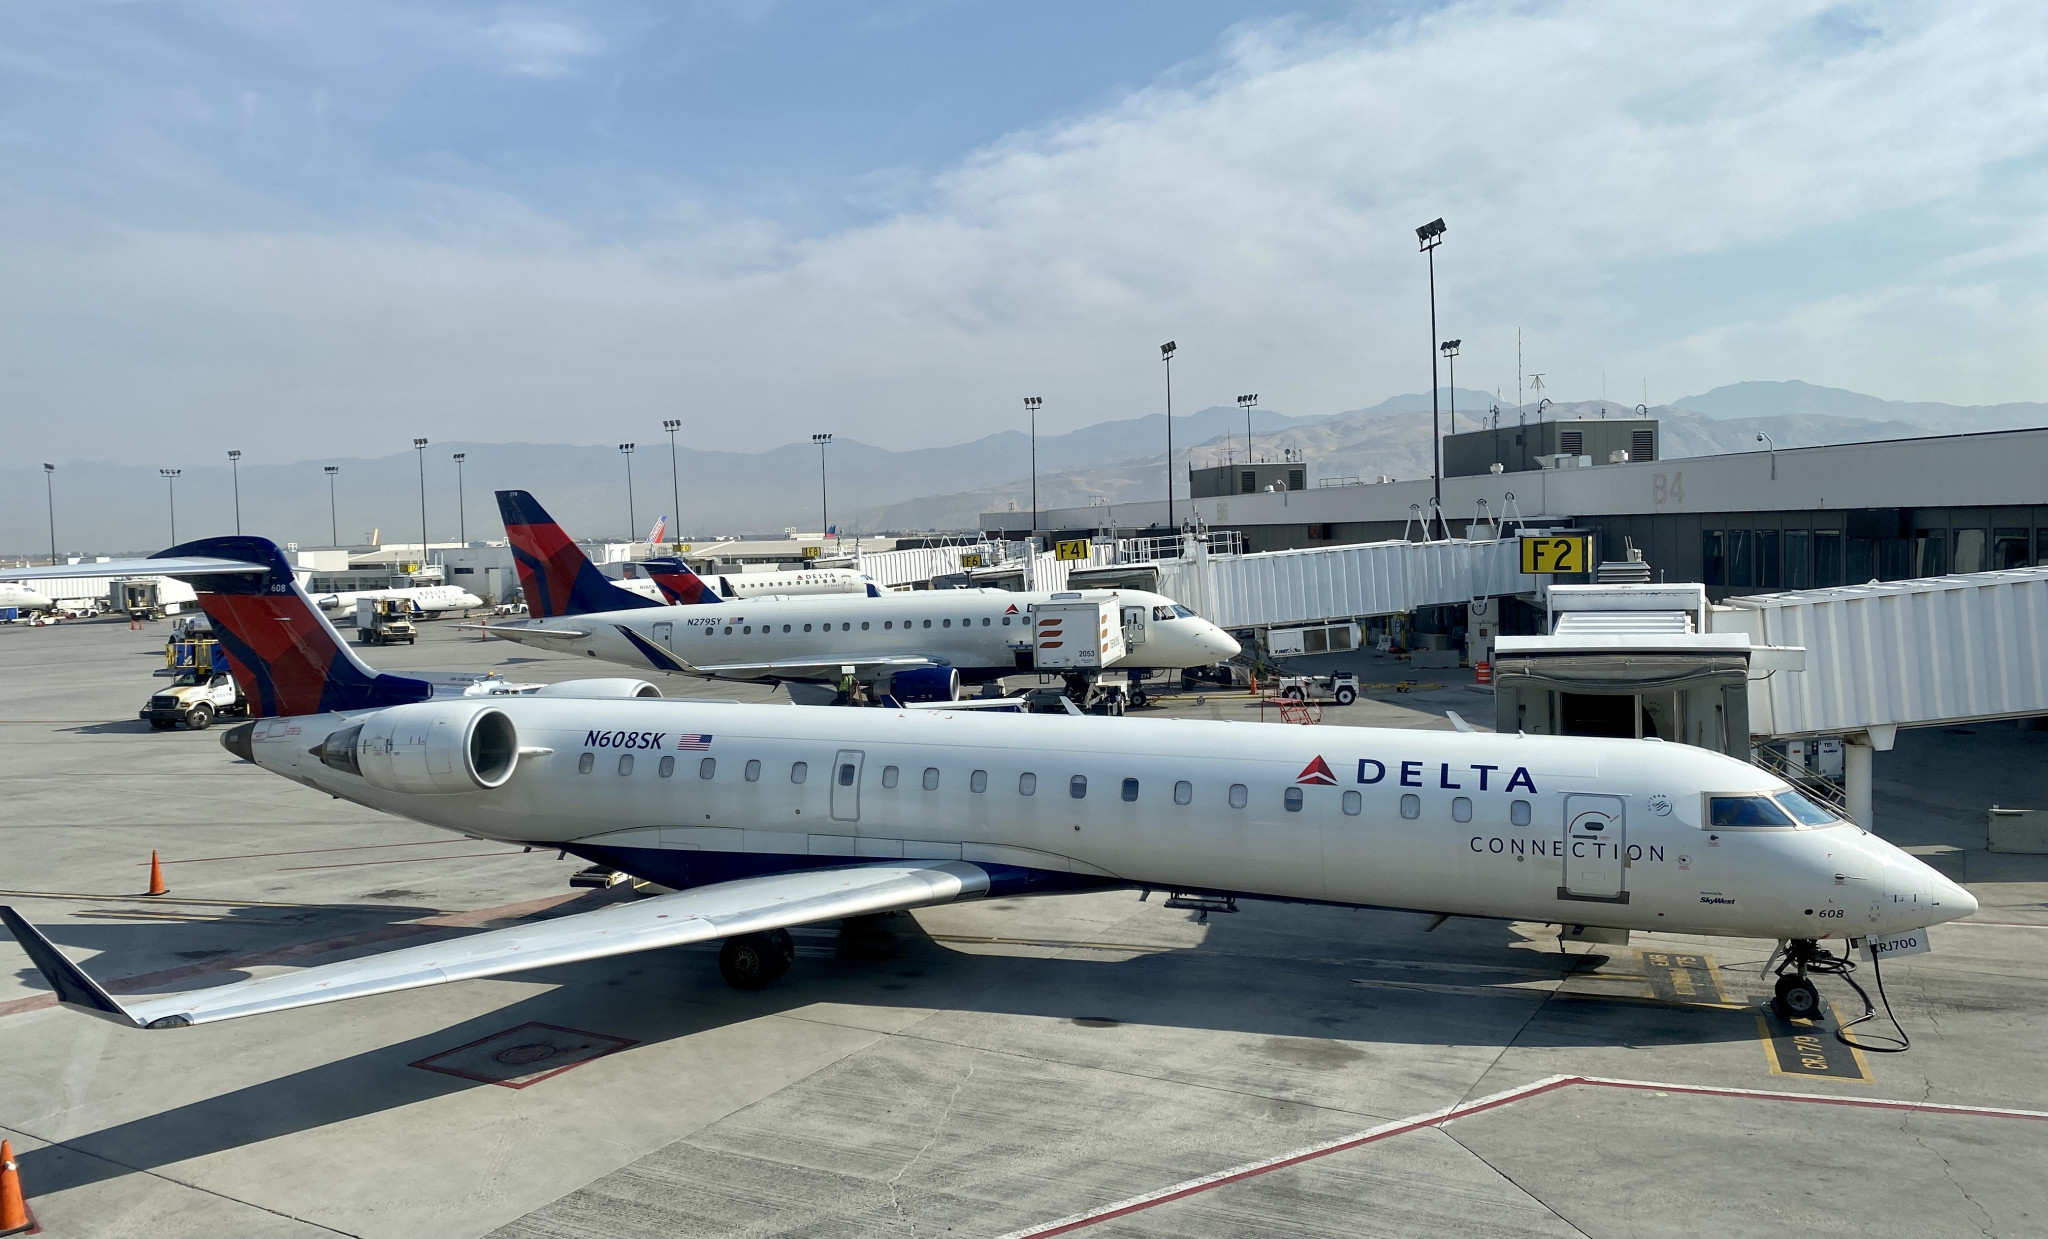 Nine-month losses soar to $14.5 billion at Los Angeles 2028 sponsor Delta Air Lines